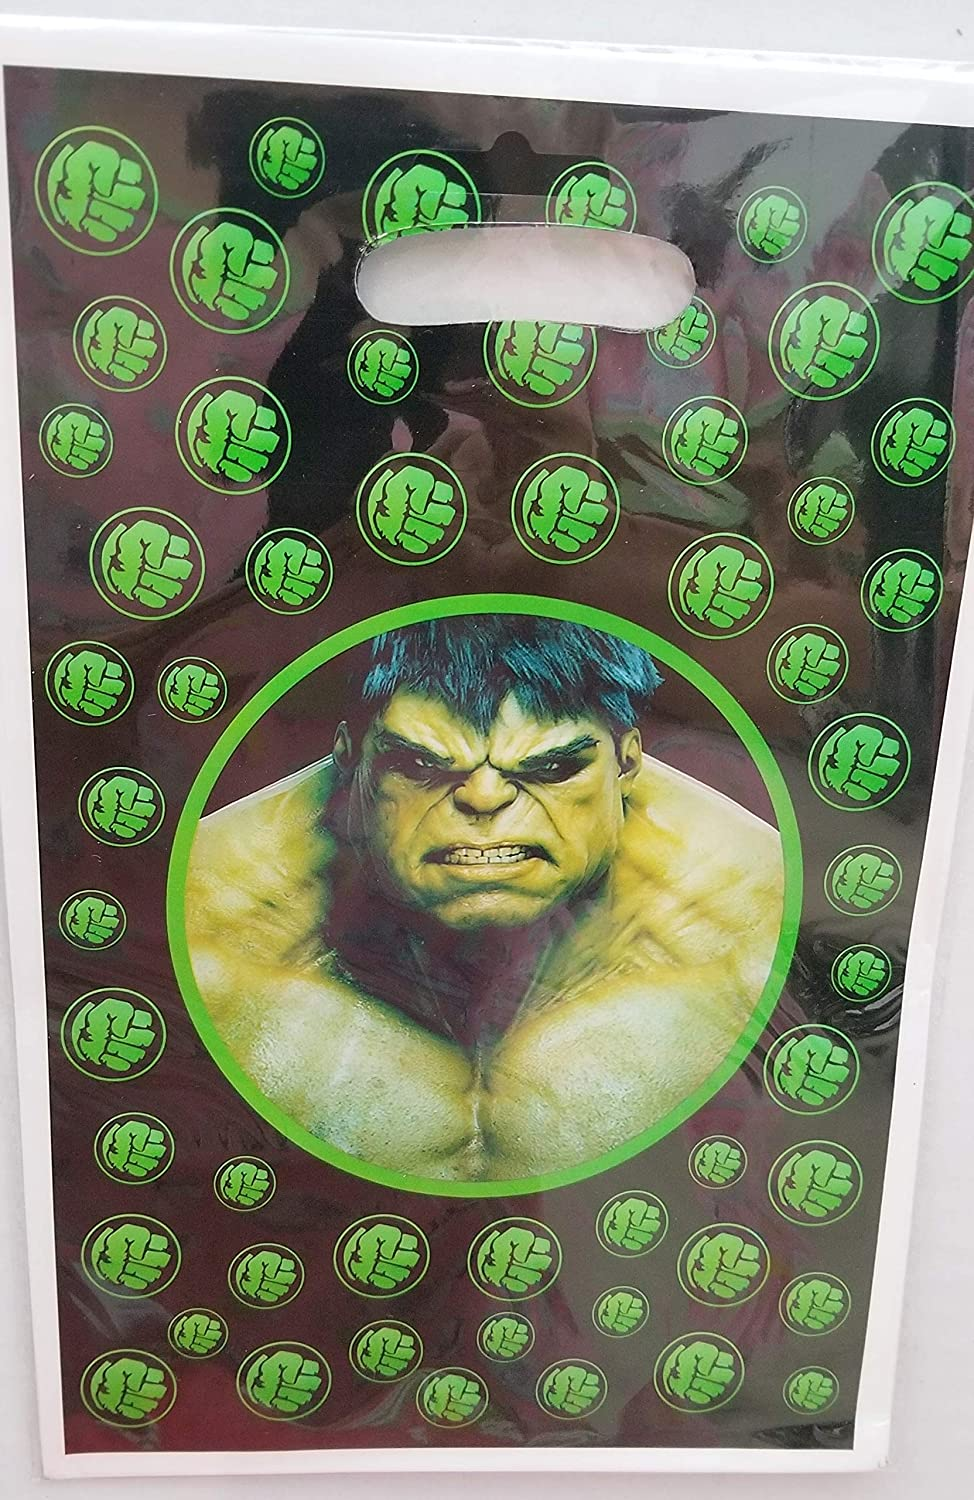 Amazon.com: Gallmark The Incredible Hulk Bolsas de fiesta ...